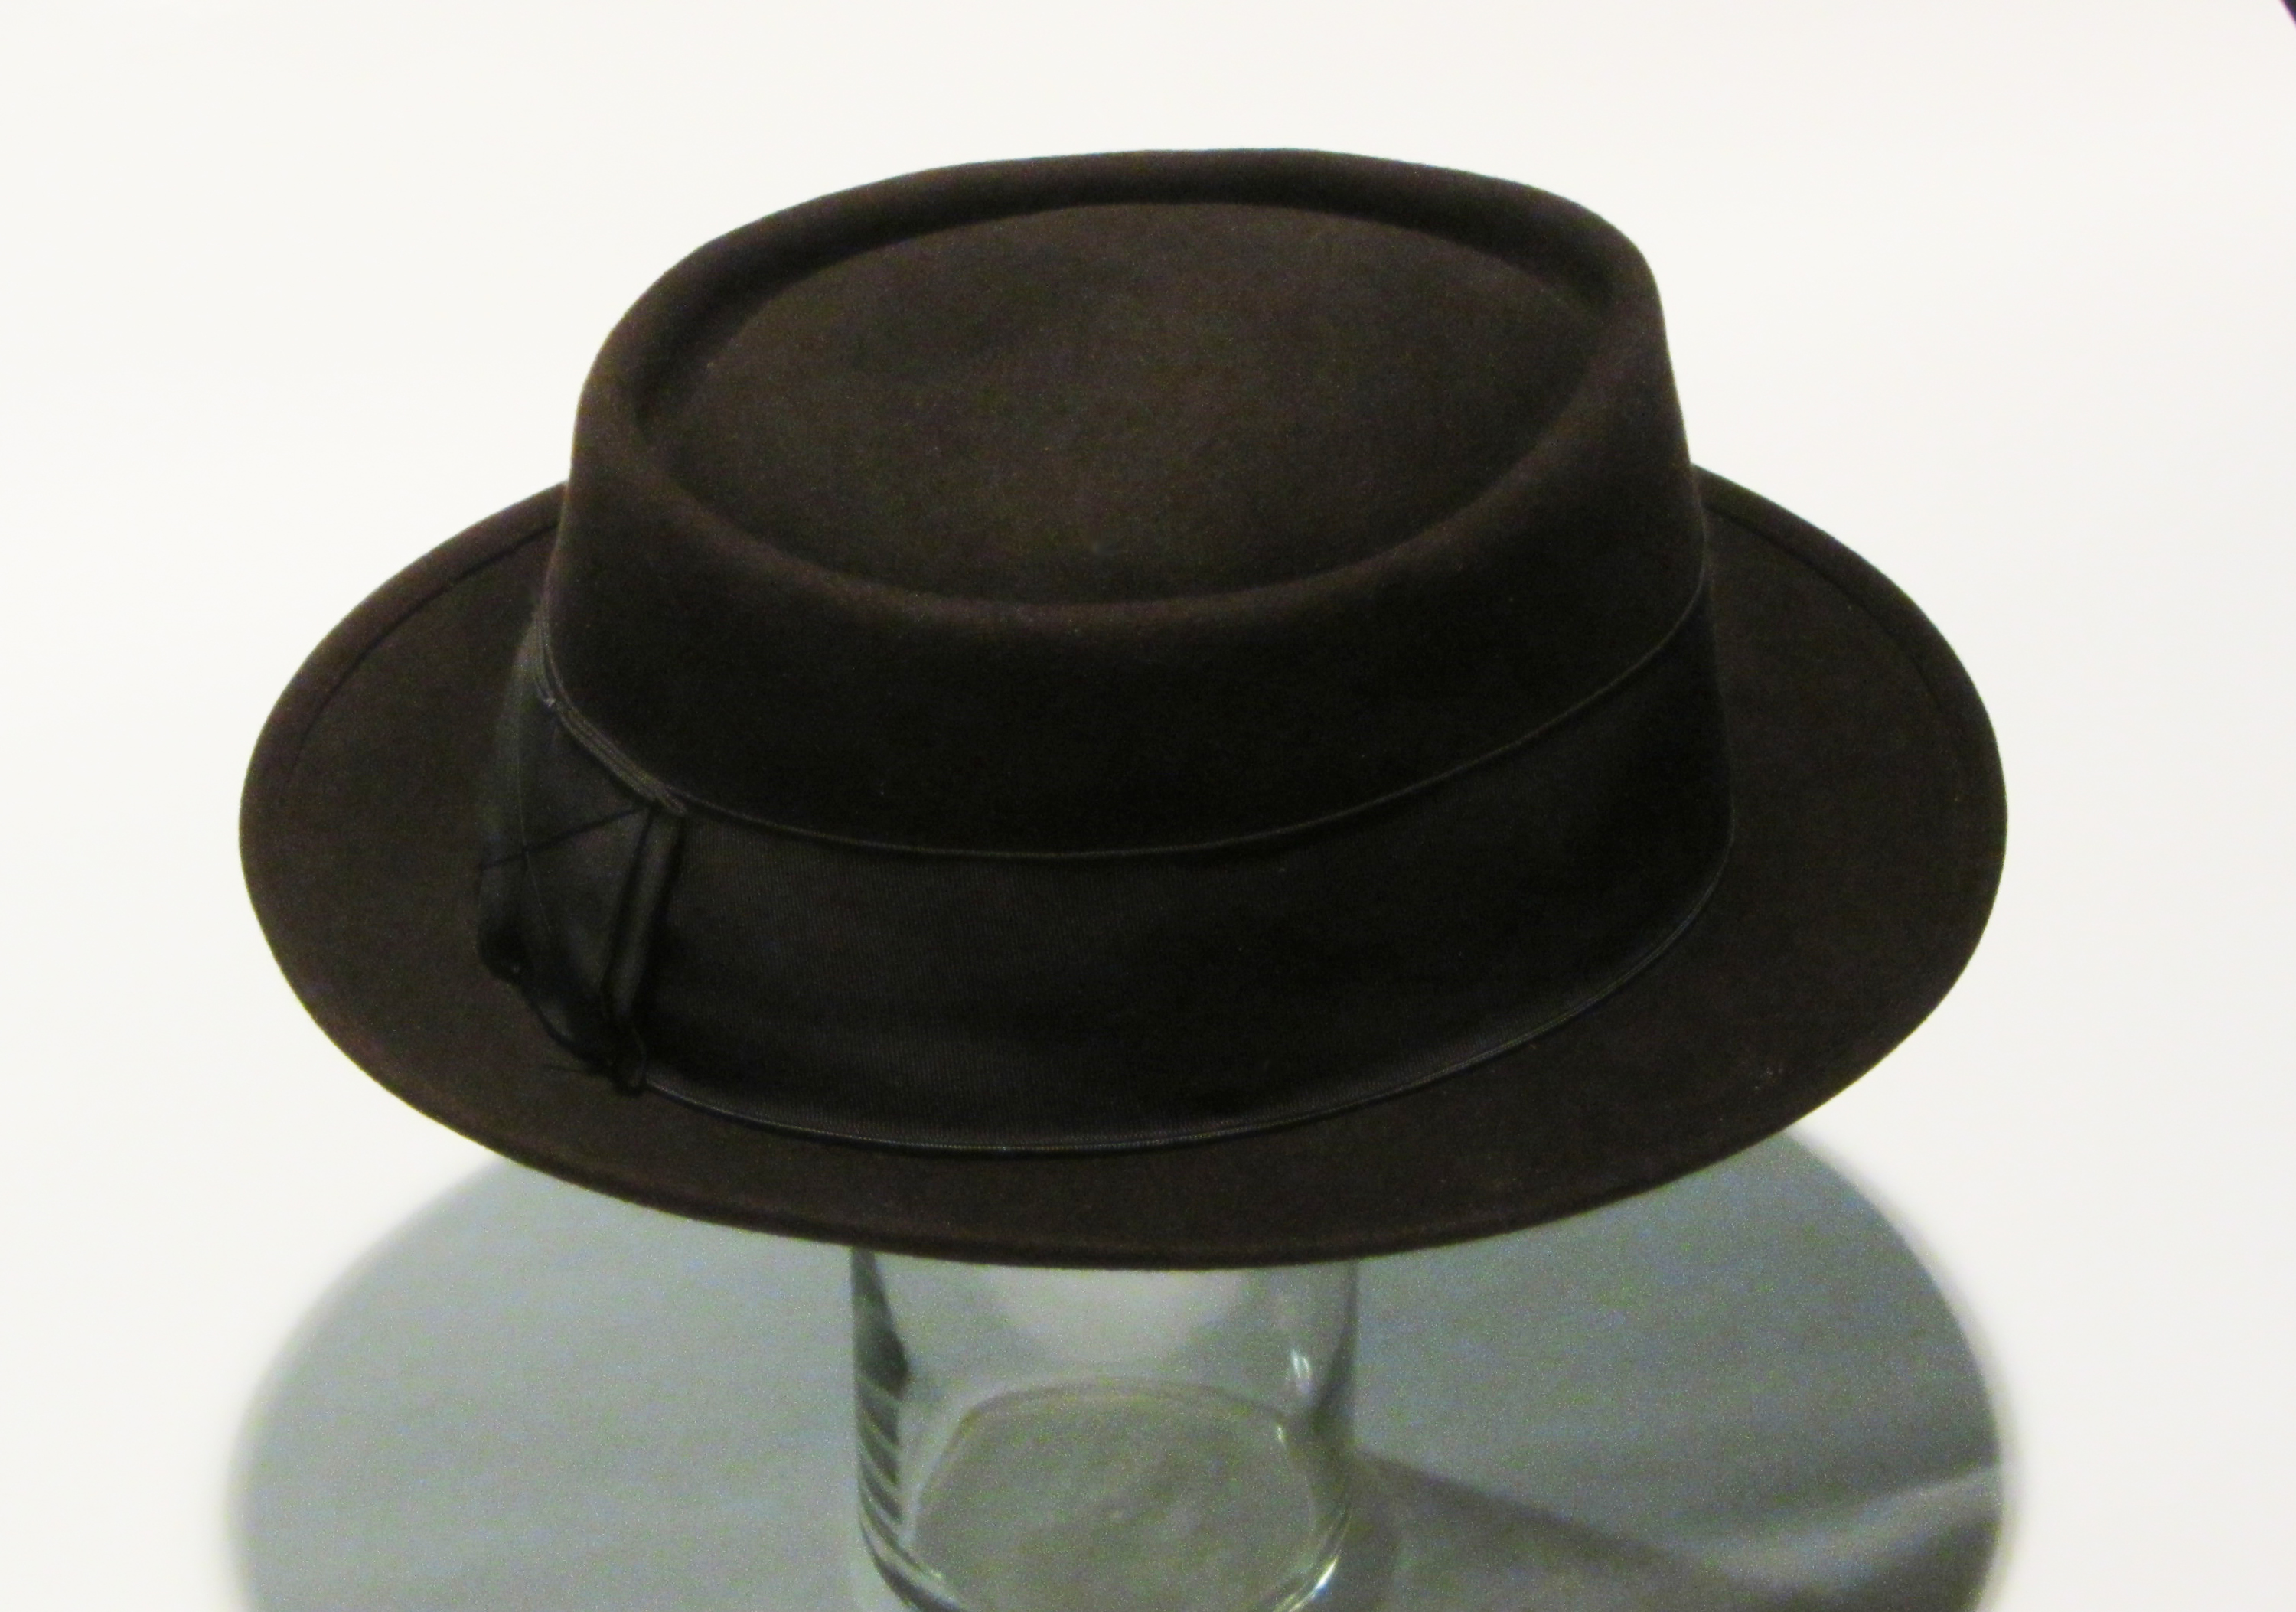 52f6405ff3320 ... Pork pie hat - Wikipedia e82717bb63c5 ...